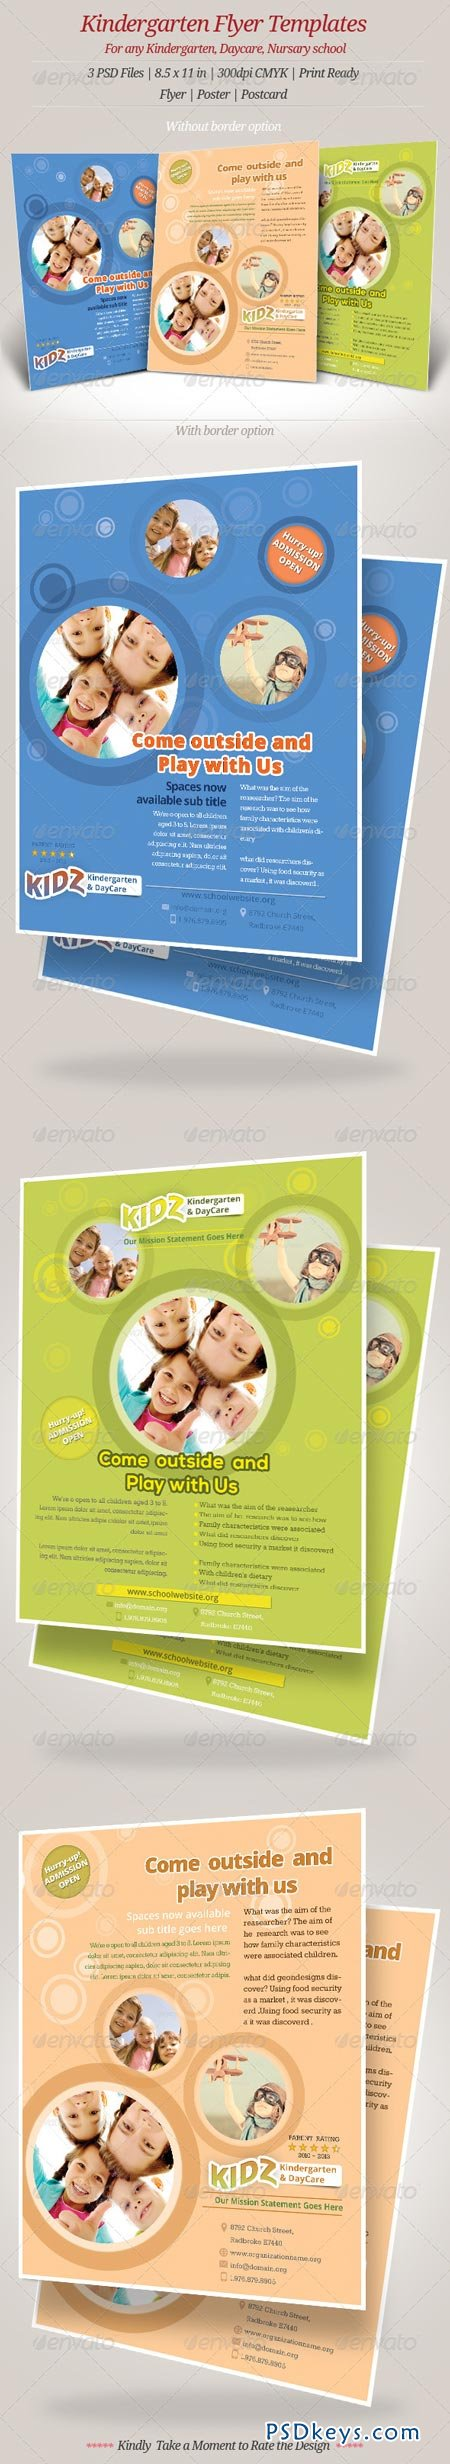 kindergarten daycare flyer templates 6972717 kindergarten daycare flyer templates 6972717